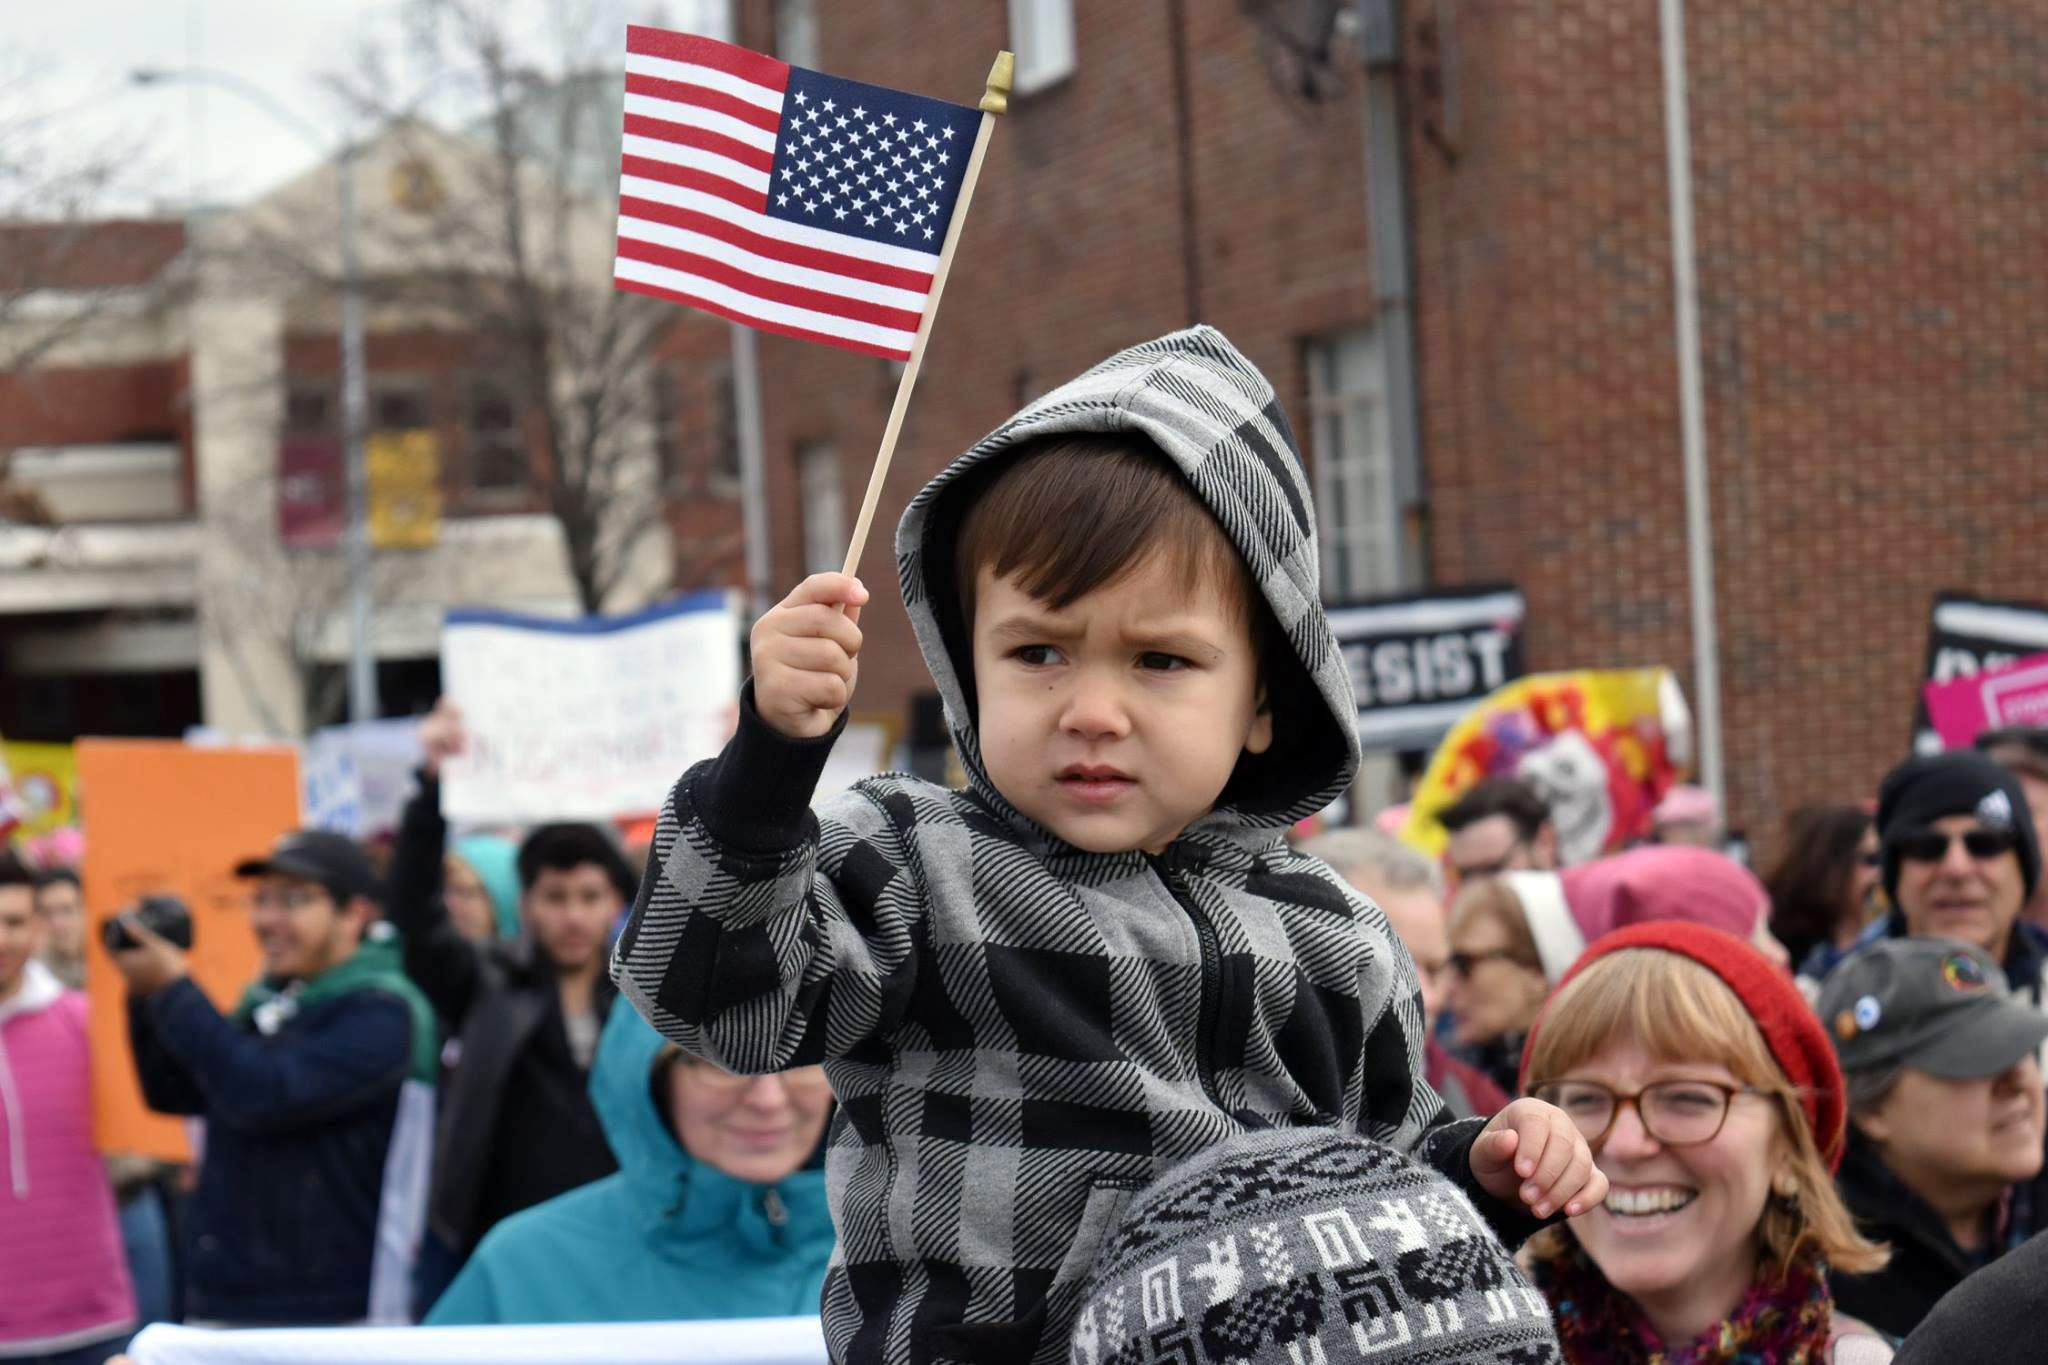 A young boy waves an American flag while perched on the shoulders of his mother during the Southern Illinois Women's March on Saturday in Carbondale.